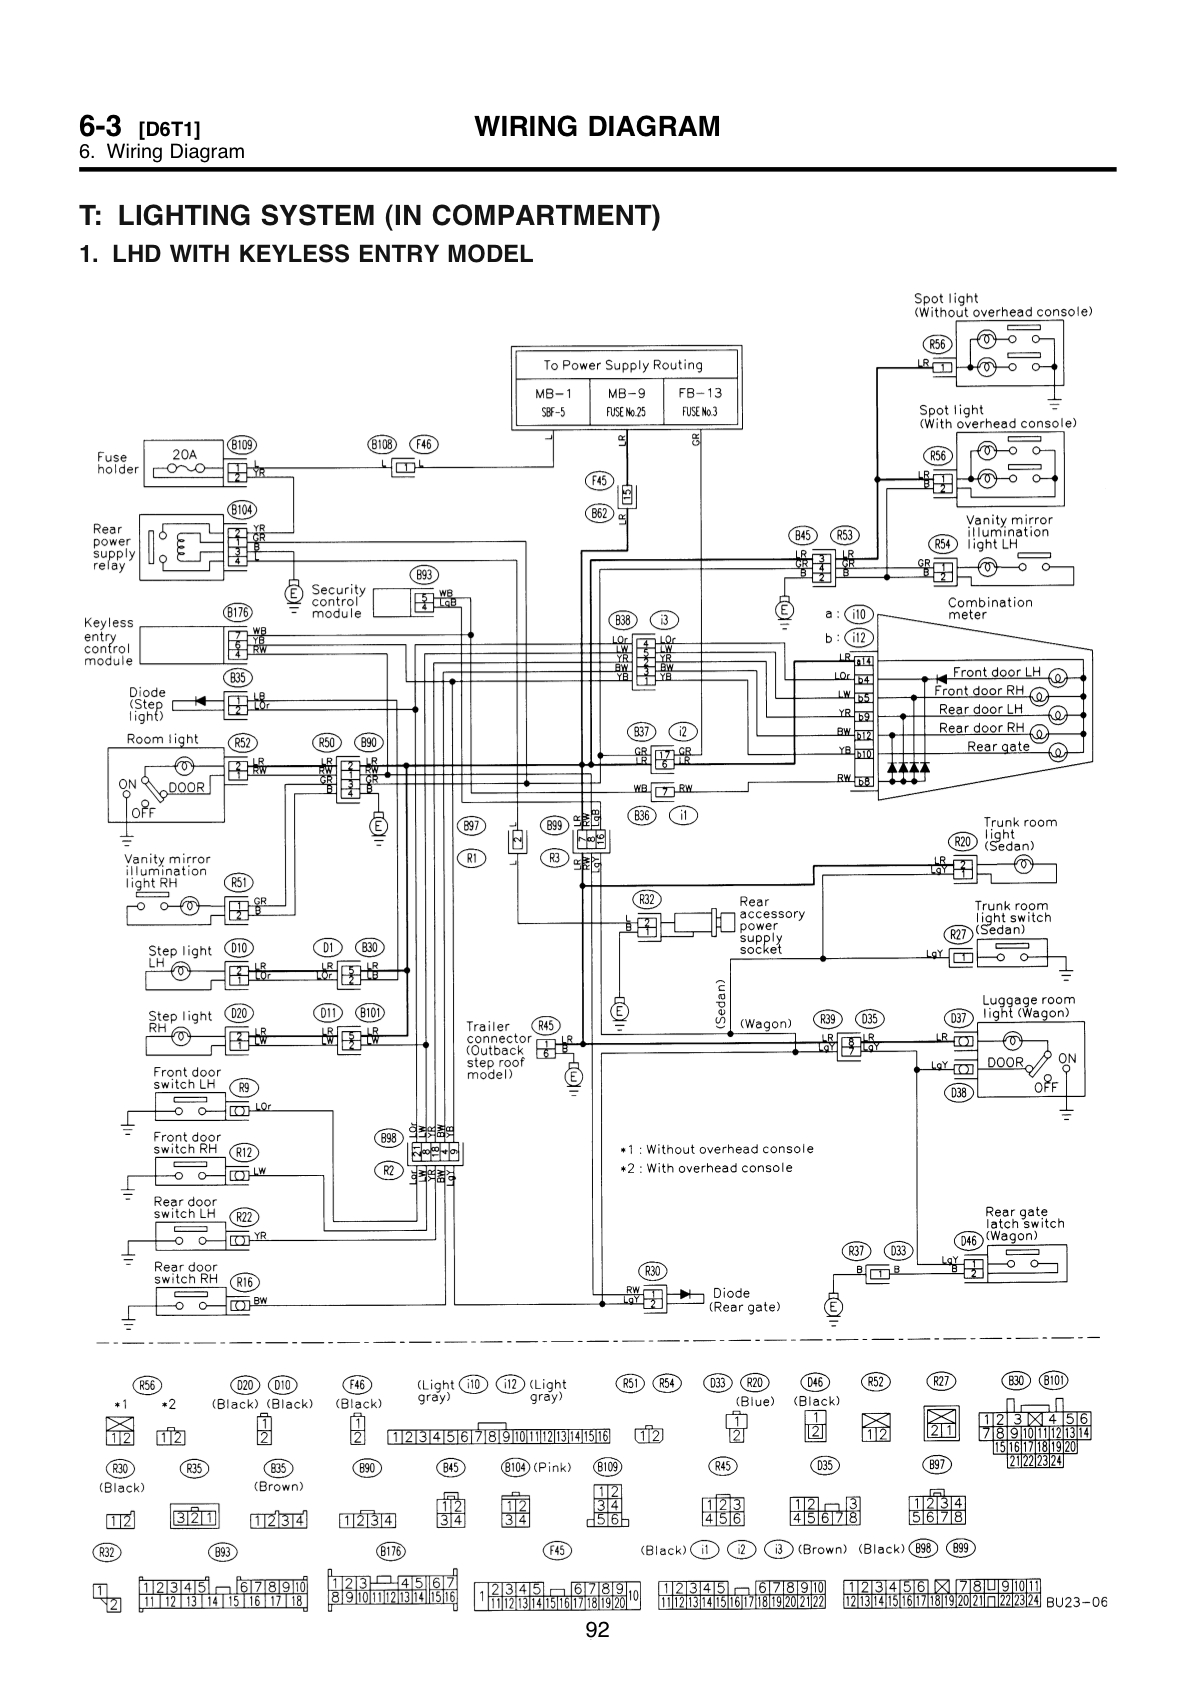 1997 subaru legacy stereo wiring diagram Download-1997 Subaru Legacy Wiring Diagram Beautiful Wiring Schmatic 98 Subaru Legacy 2 5 8-t